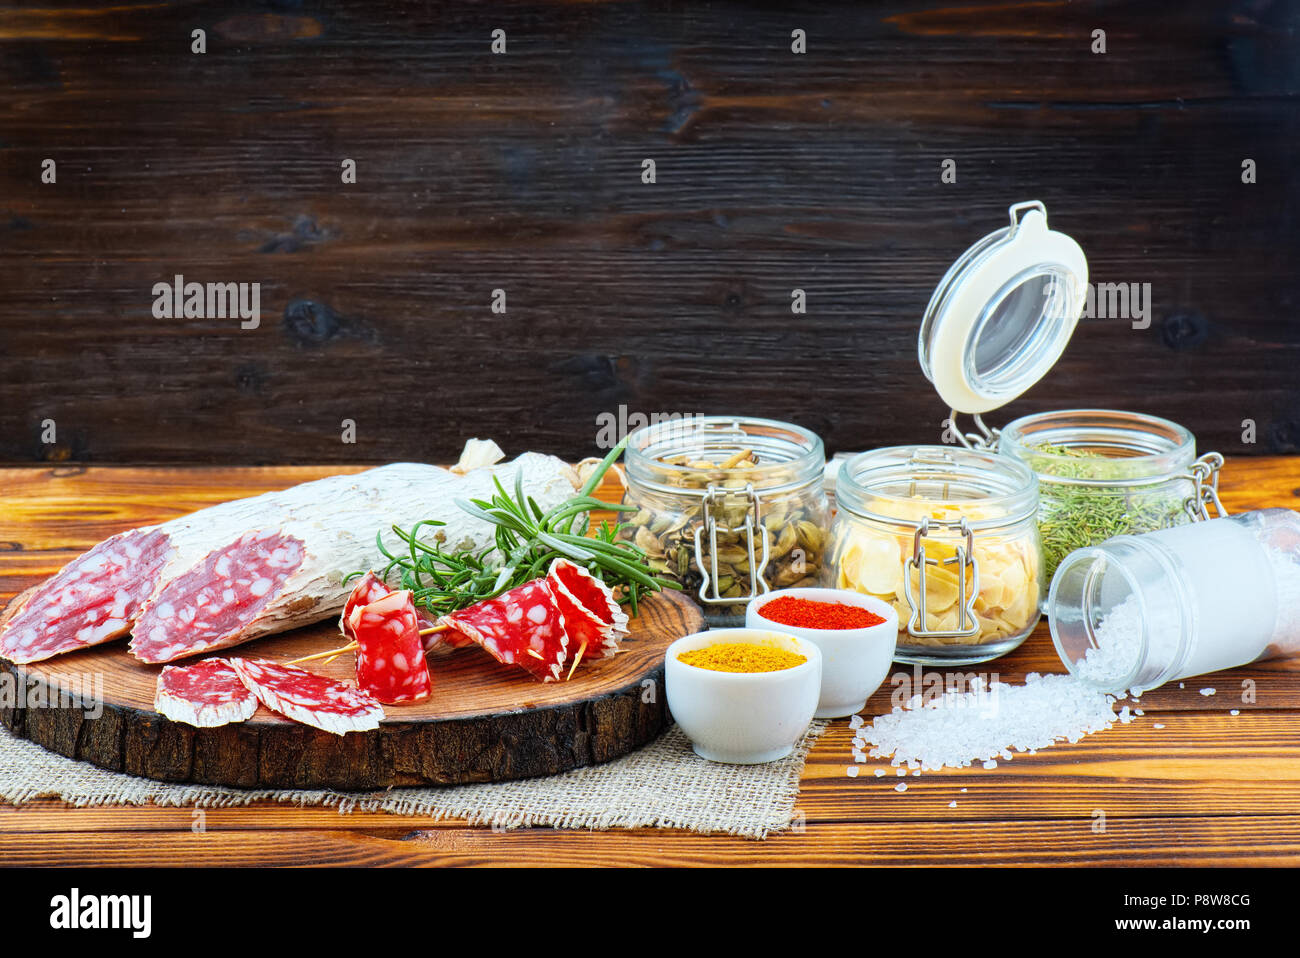 Sliced cured sausage with spices and a sprig of rosemary on dark wooden rustic background. - Stock Image